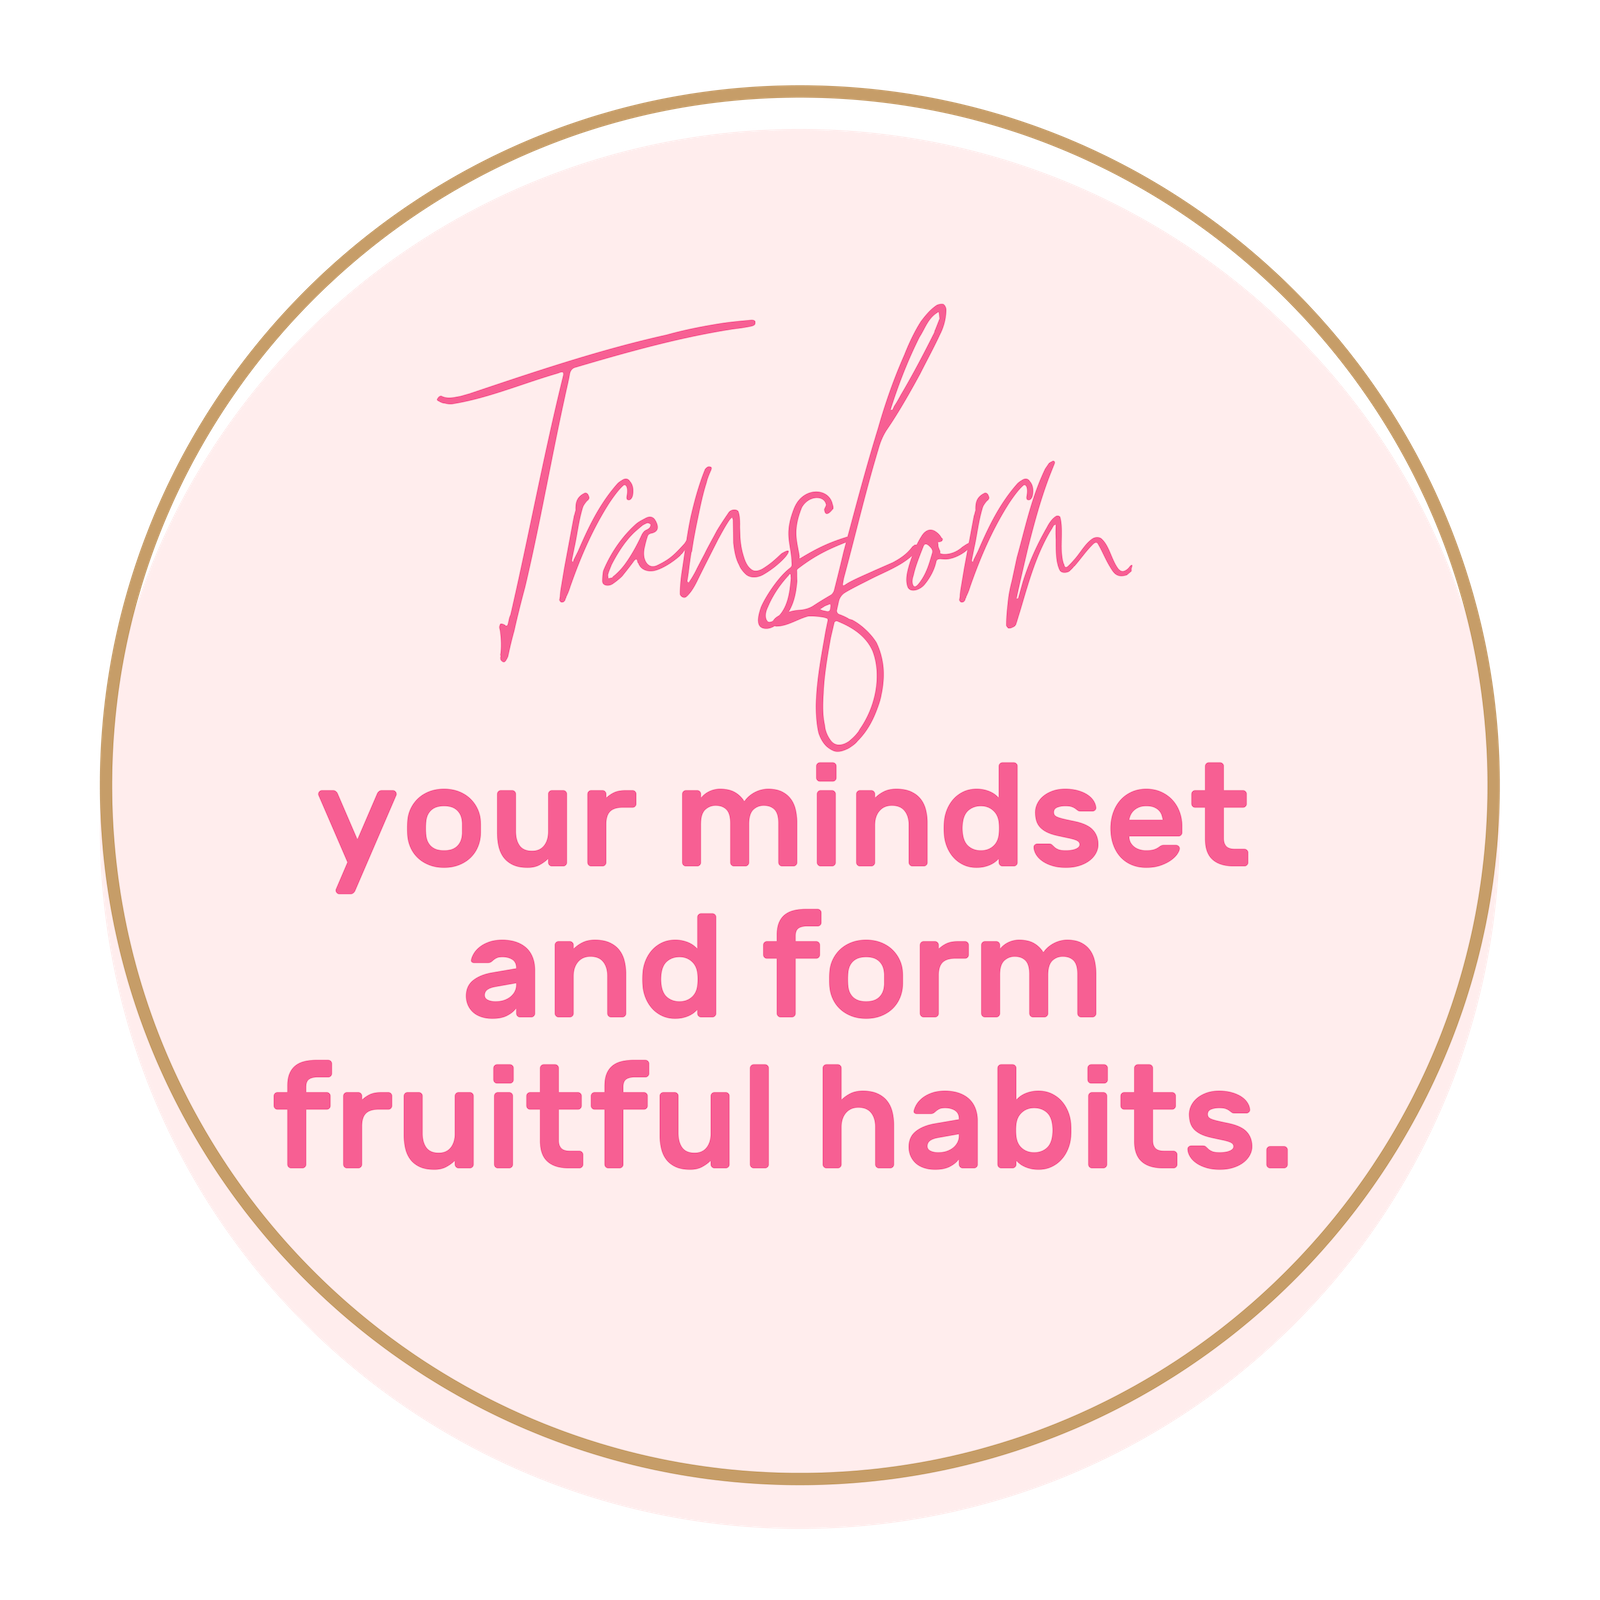 - You will experience a purposeful mindset shift and be clear on the mindset and habits required of you to live each day with purpose and align your life with your mission.